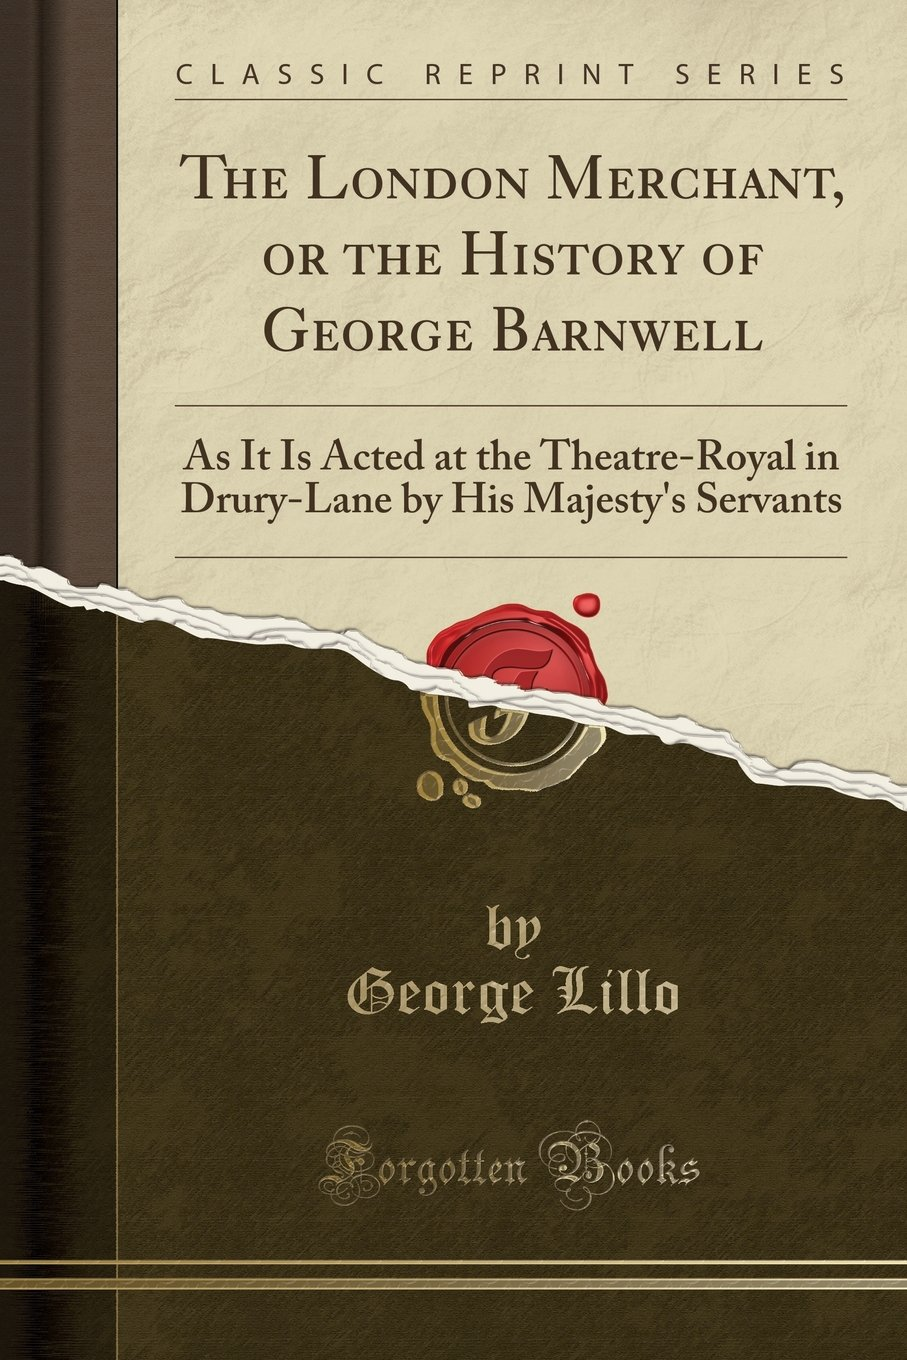 Download The London Merchant, or the History of George Barnwell: As It Is Acted at the Theatre-Royal in Drury-Lane by His Majesty's Servants (Classic Reprint) pdf